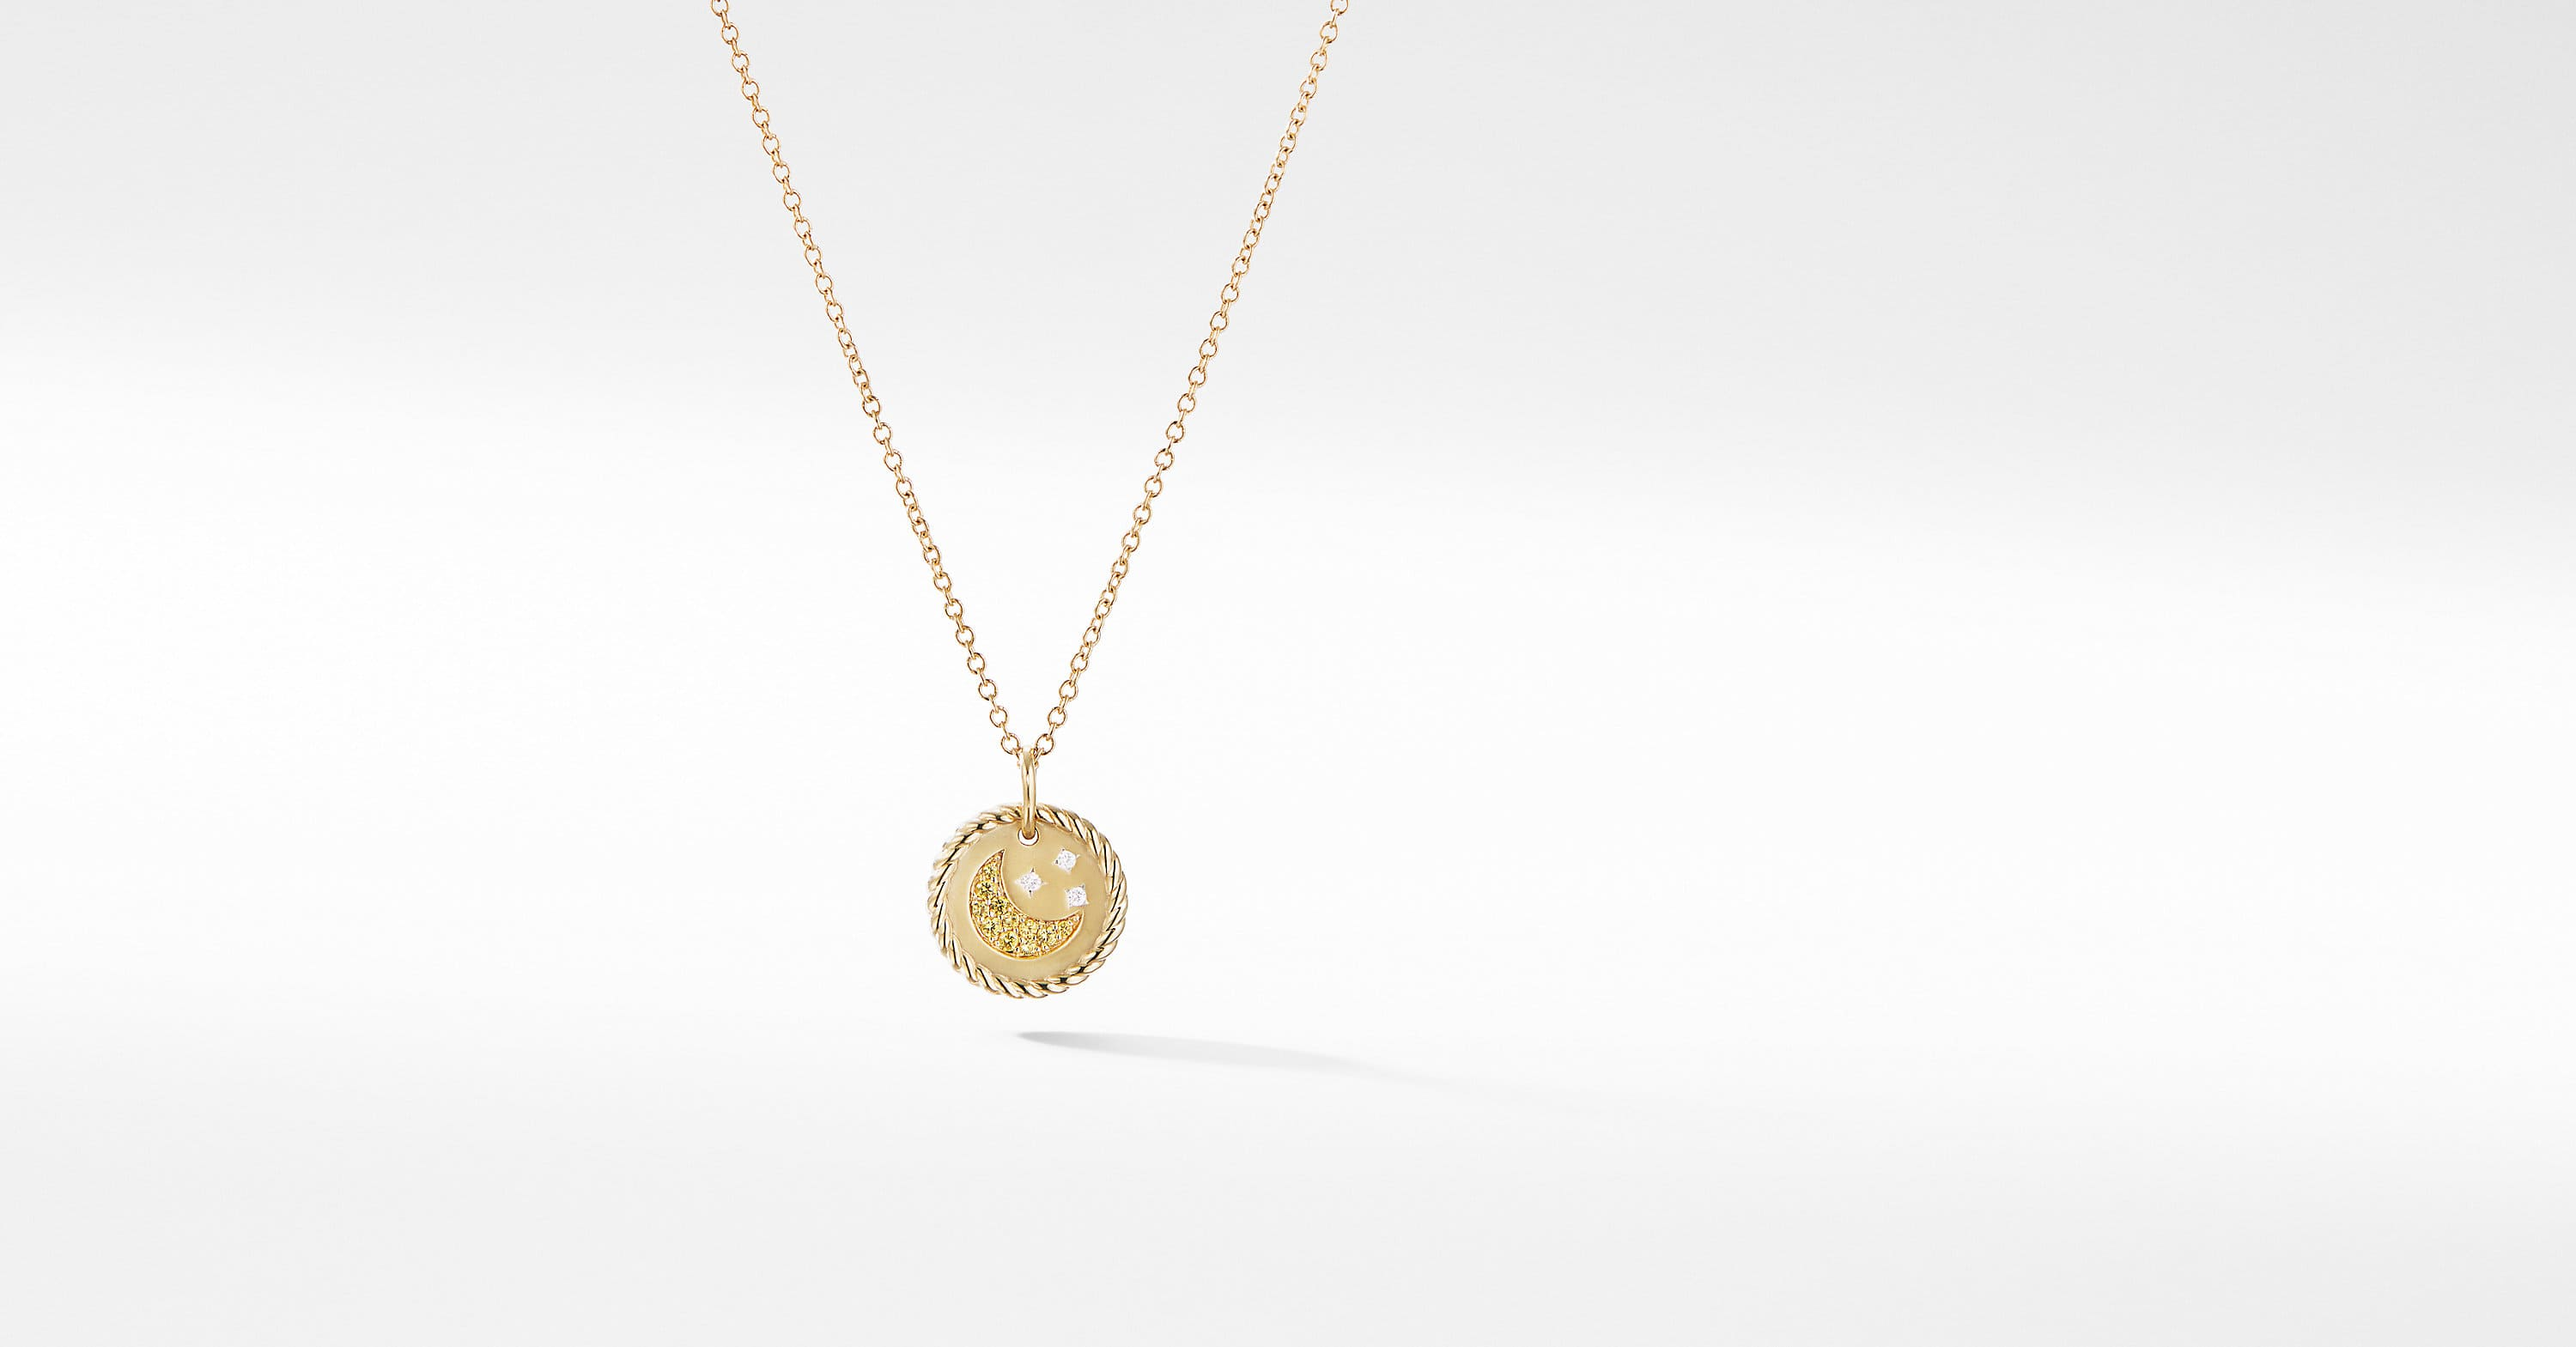 Cable Collectibles Moon and Stars Necklace with Diamonds in 18K Gold